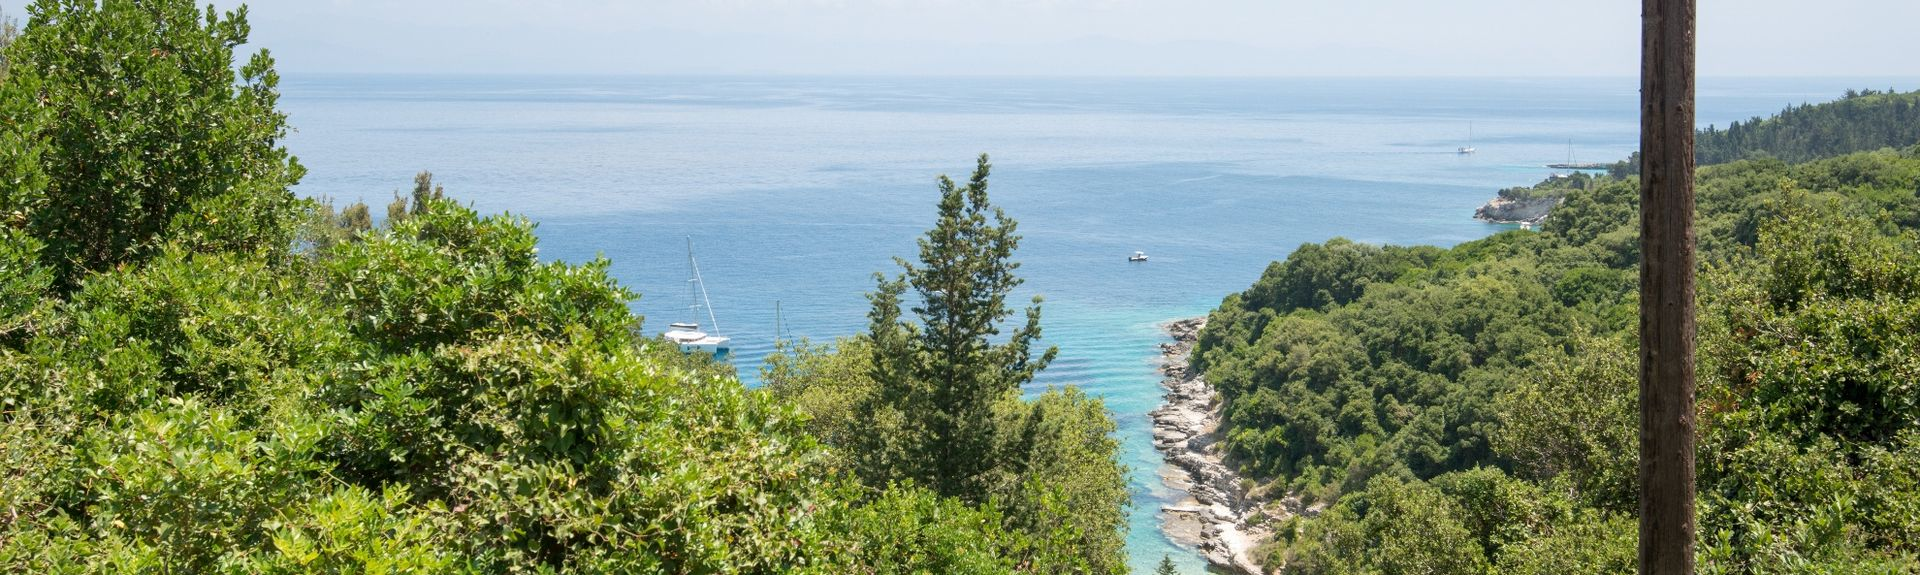 Antipaxos (Insel), Peloponnese, West Greece and Ionian Sea, Griechenland